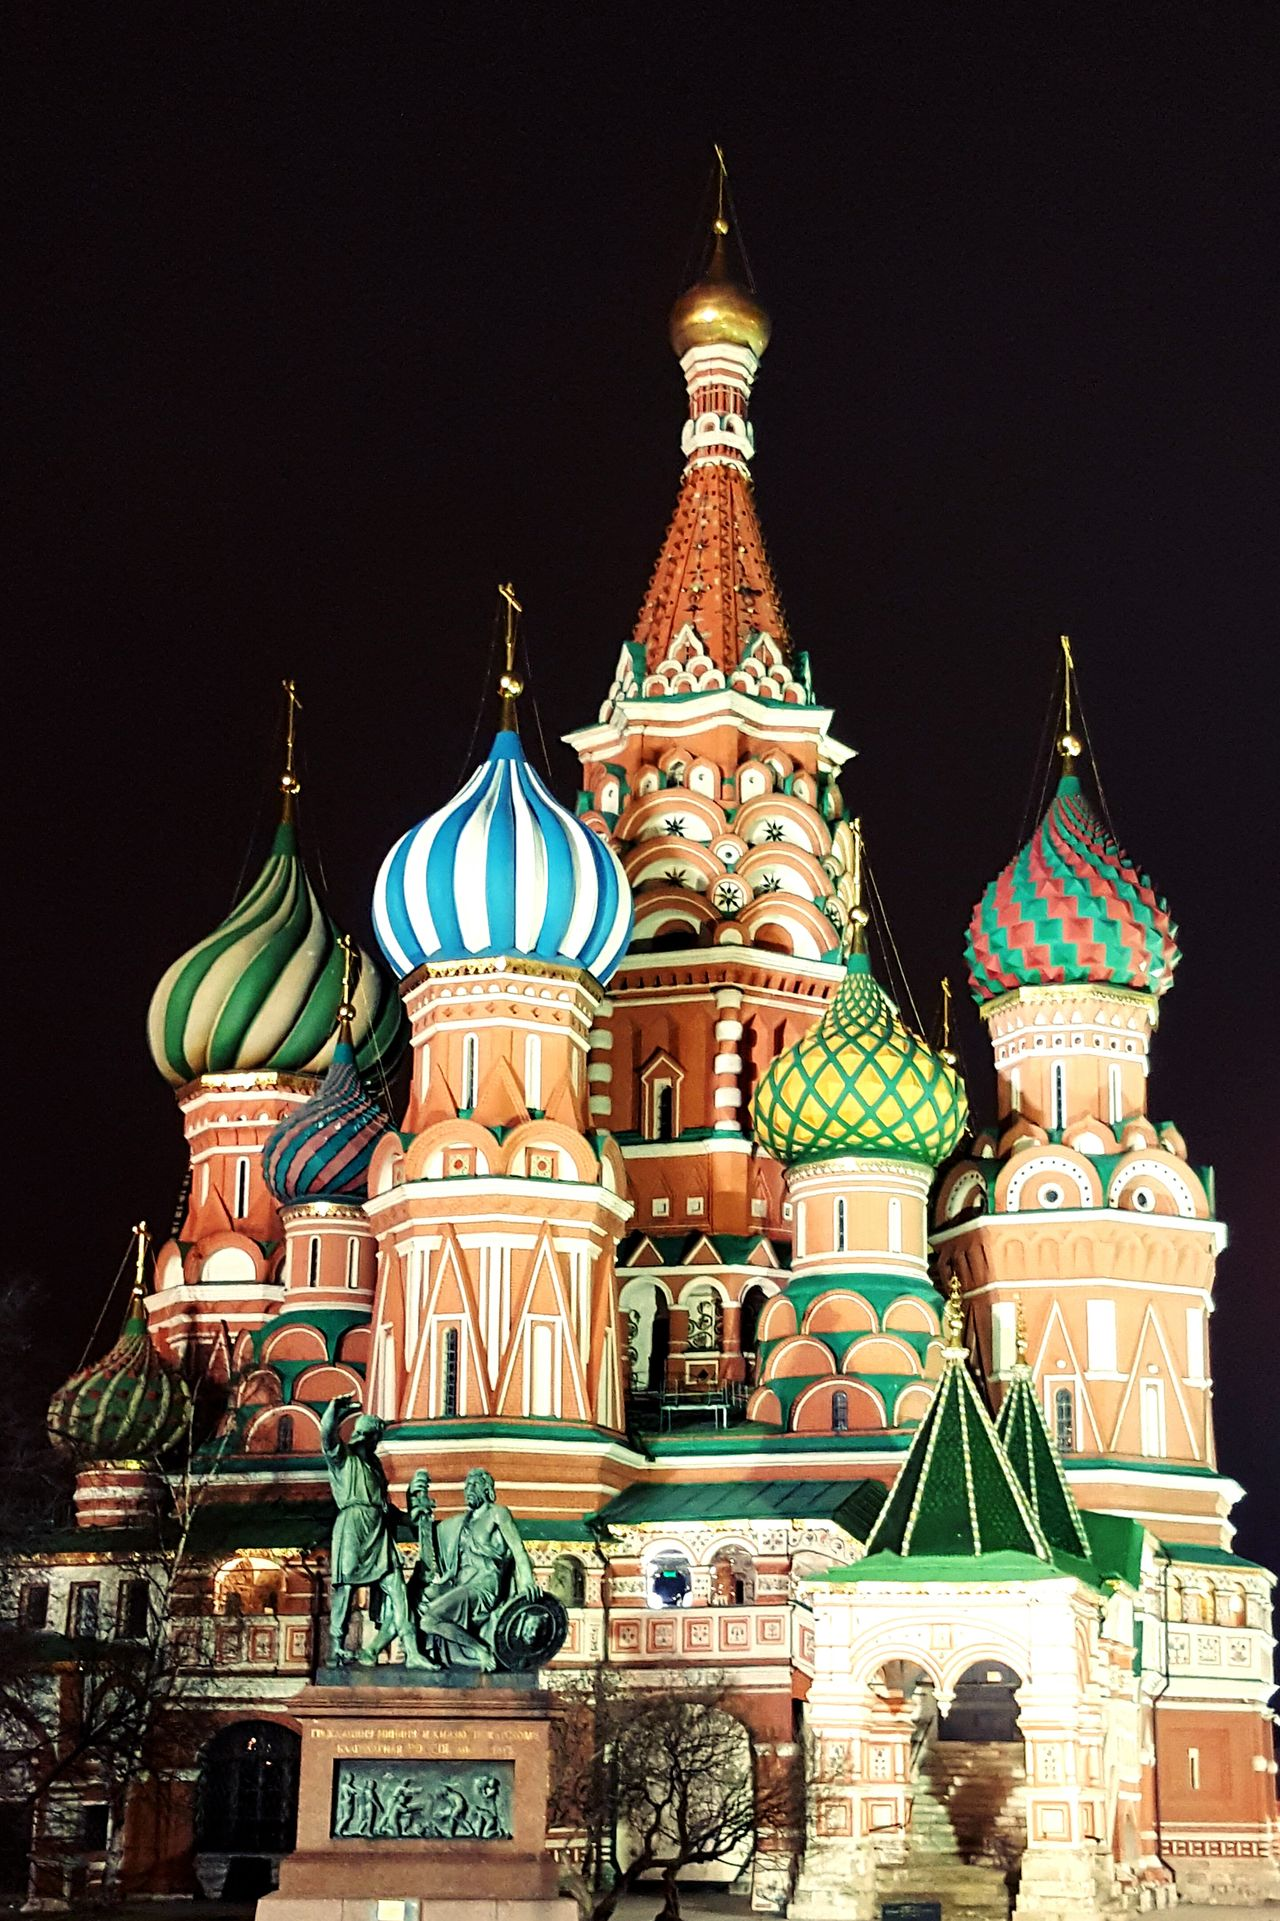 Travel Destinations Architecture Dome Travel Building Exterior City Tourism Night No People Place Of Worship Cultures Ortodox Church Nightphotography Kremlin Architecture Russia Illuminated St. Basil's Cathedral In Moscow St. Basil's Cathedral Red Square Moscow Moscow Russia Red Square Church Night Photography Architecture Kremlin